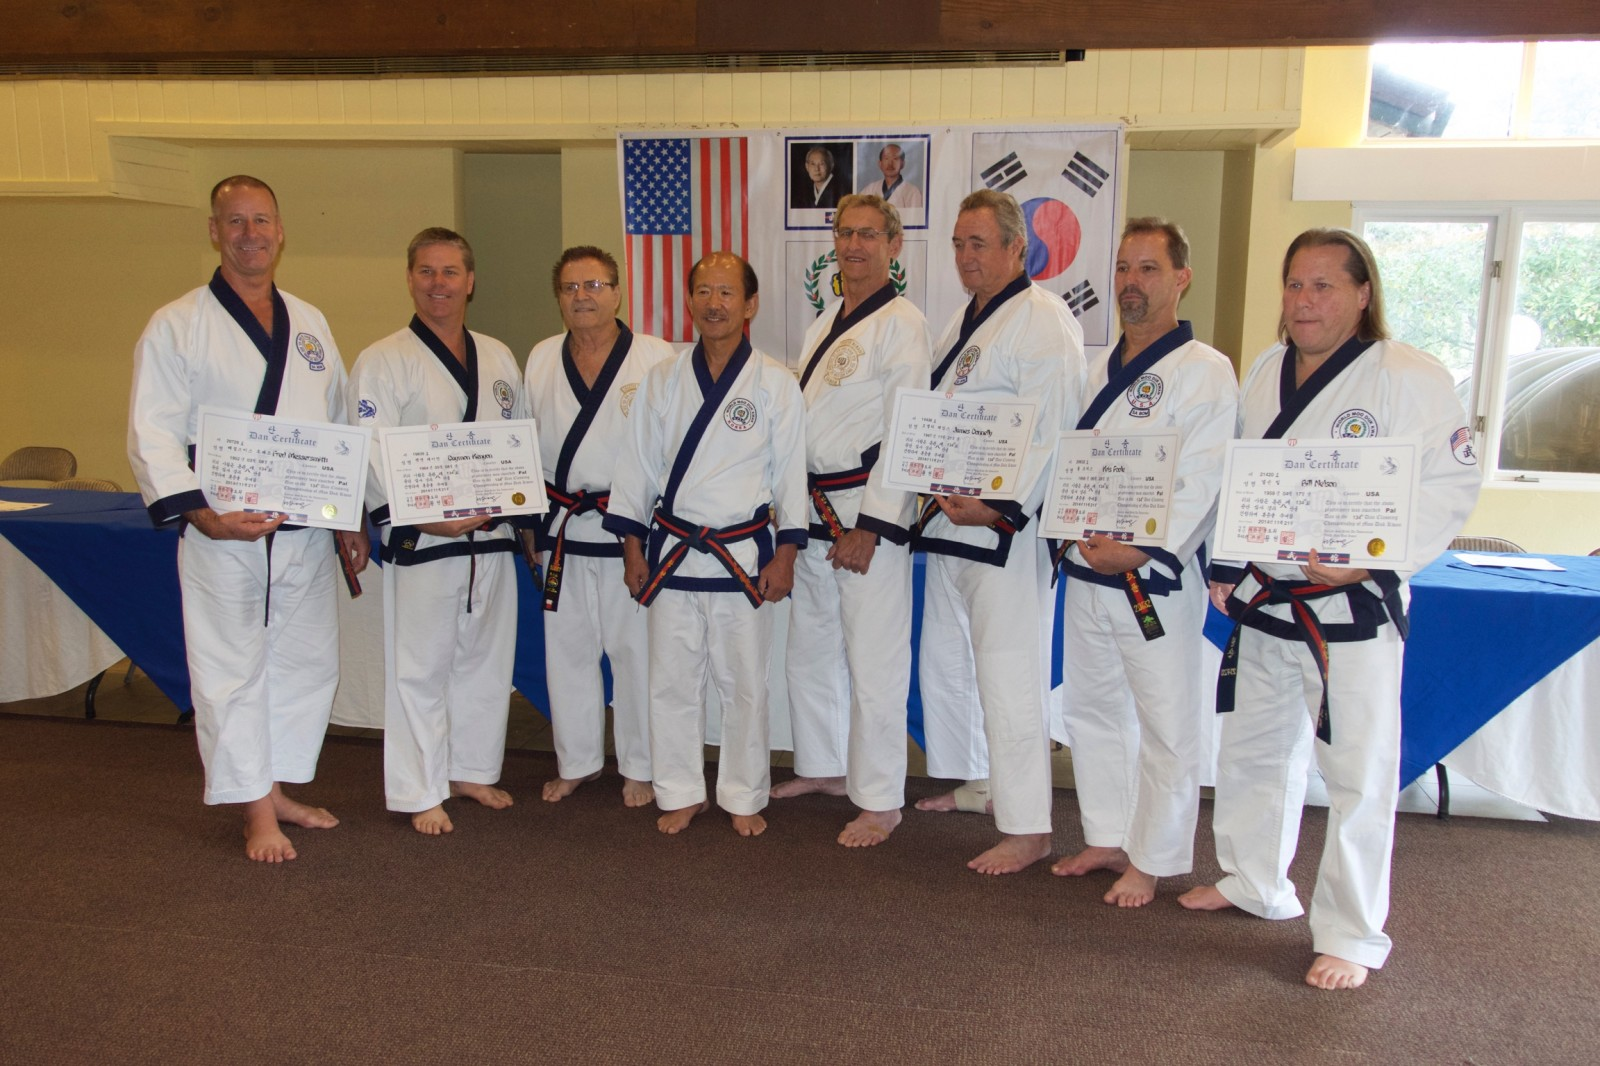 Five Moo Duk Kwan 8th Dan Rank Certifications Awarded<br /><span style='font-family: arial, helvetica, sans-serif; font-size: 12pt; color: teal;'>First Time In Moo Duk Kwan History That Five Members Earn 8th Dan At Same Time</span>